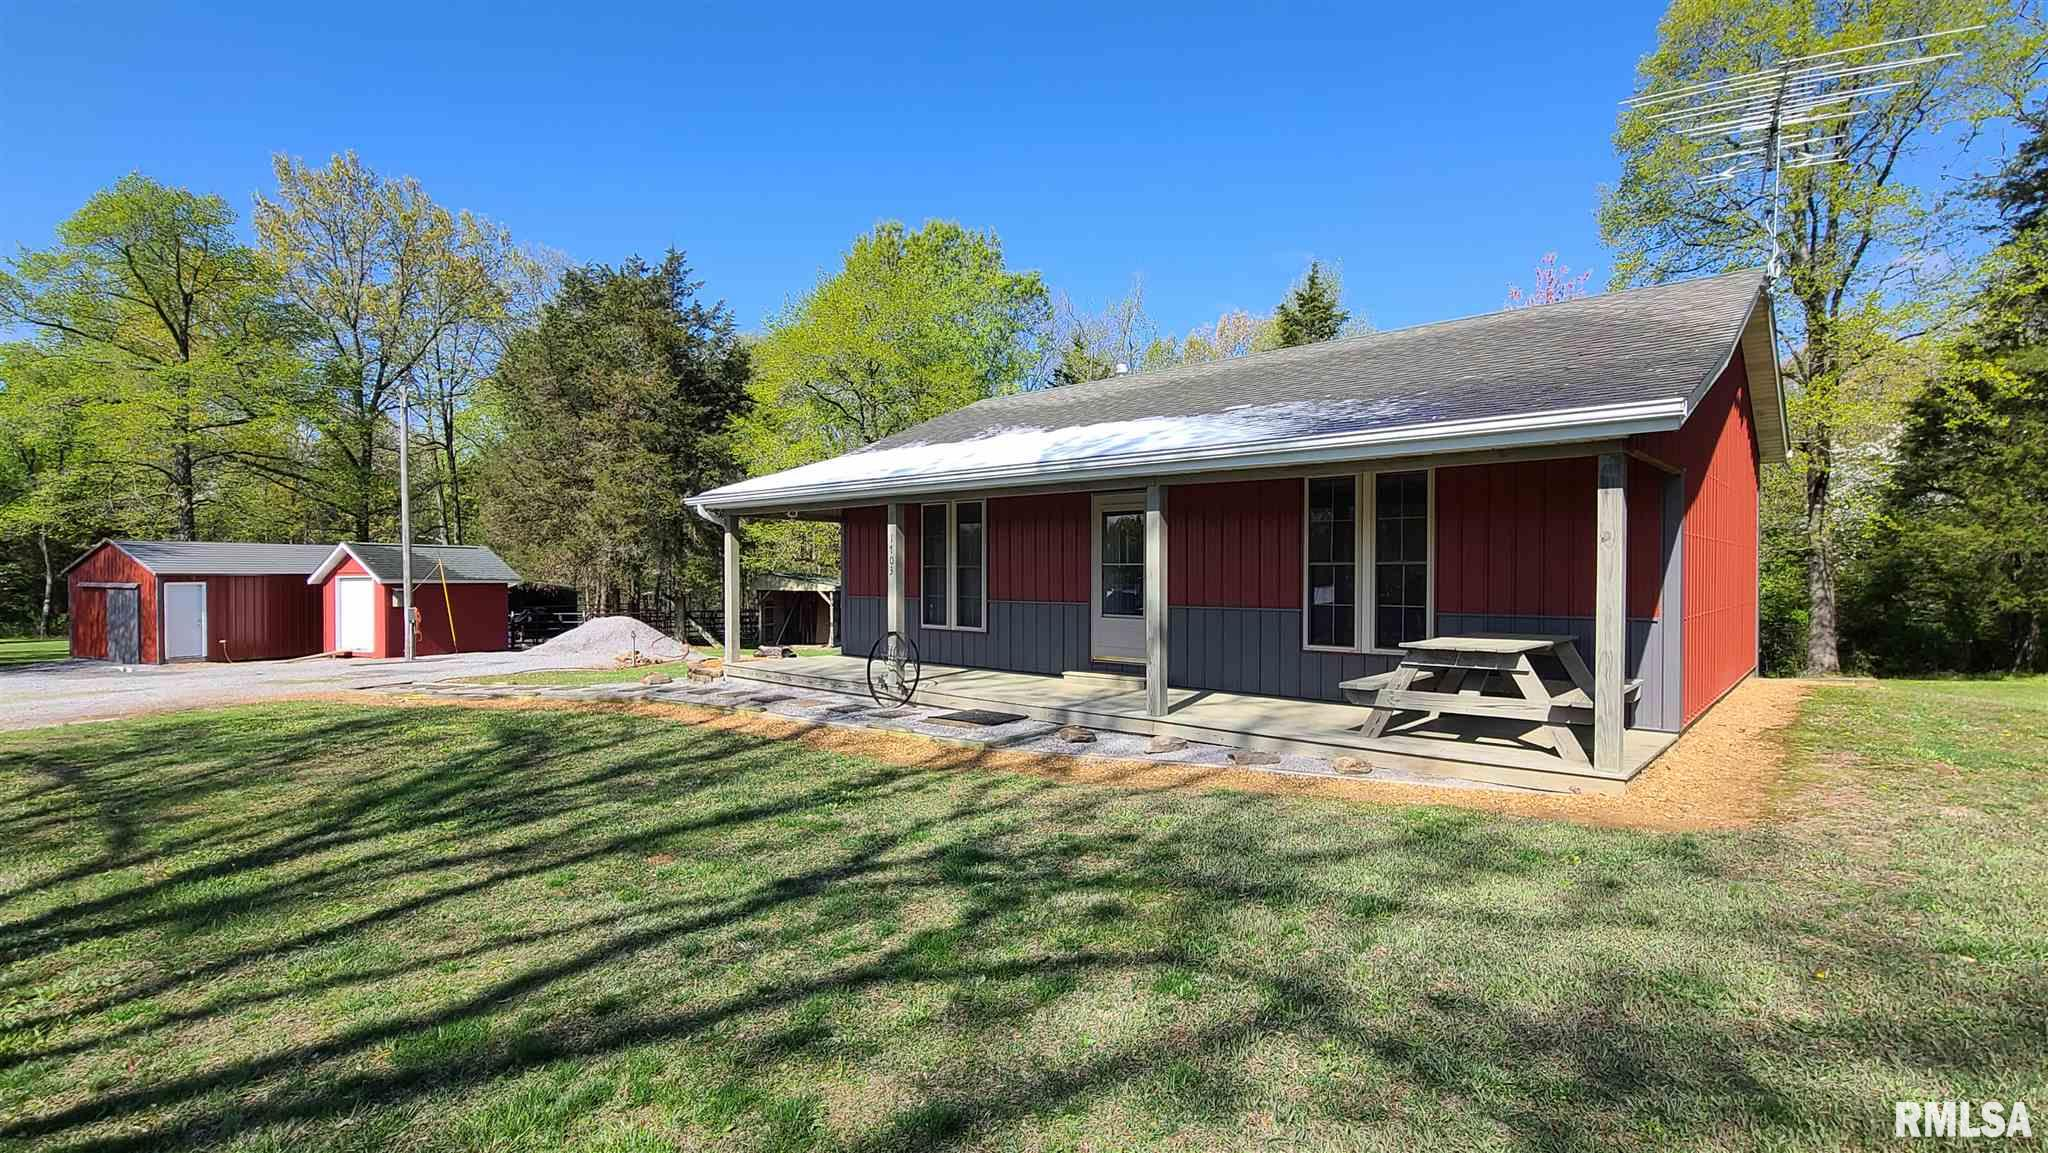 1703 State Route 145 N Property Photo - Harrisburg, IL real estate listing